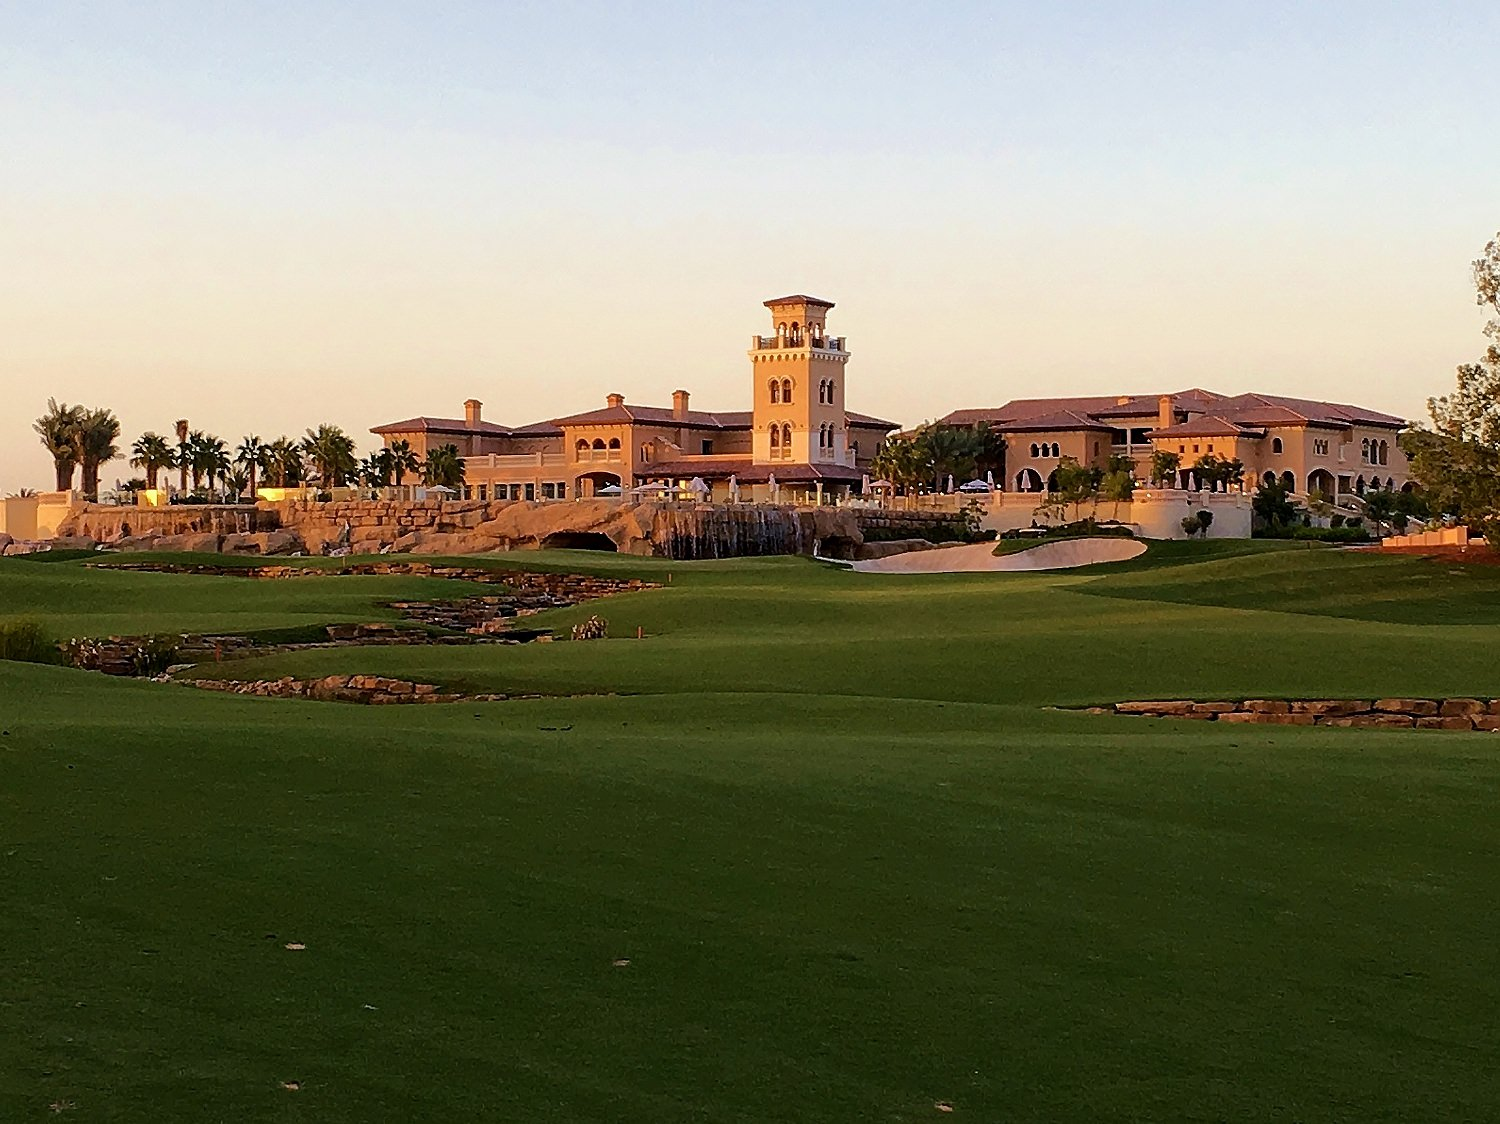 The 18th at the Earth Course - a high point!